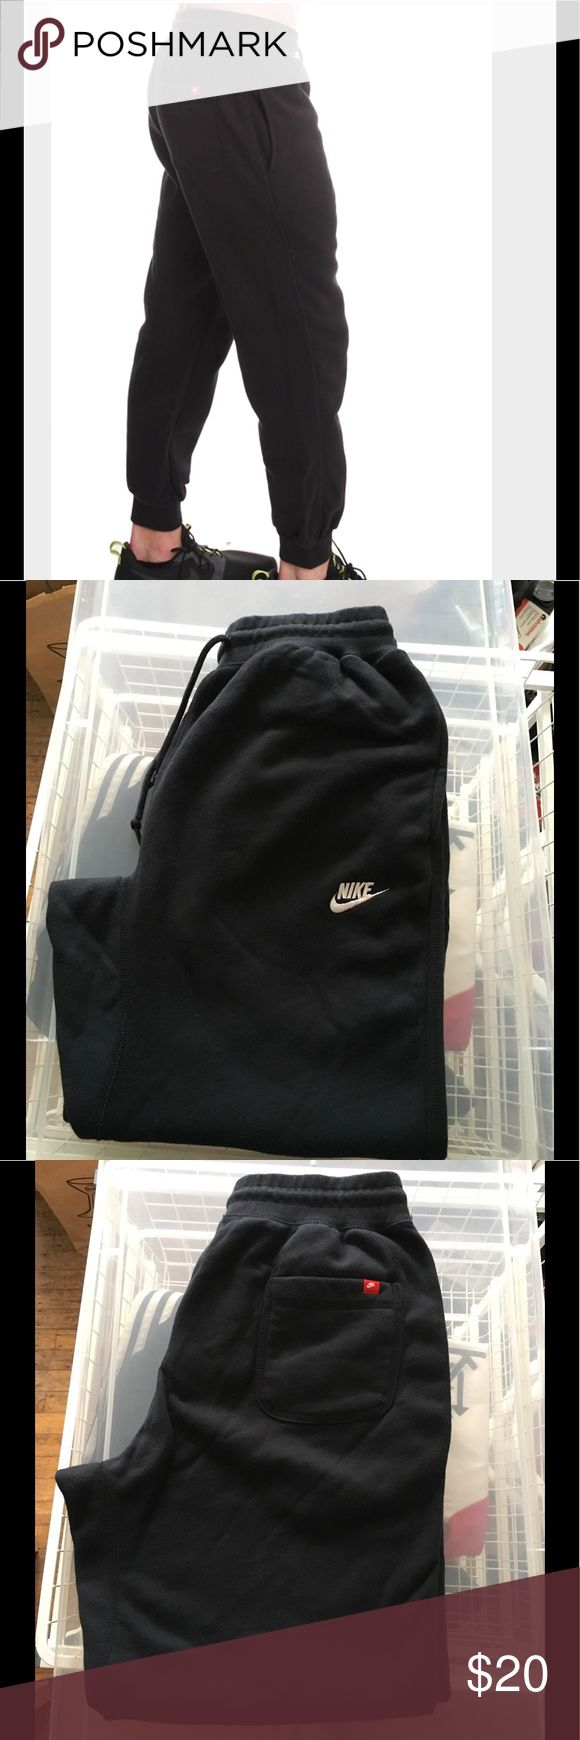 Men's Nike cuffed jogger pant Black cuffed joggers. Three pockets two side pockets one back pocket. In good condition. No damage Nike Pants Sweatpants & Joggers